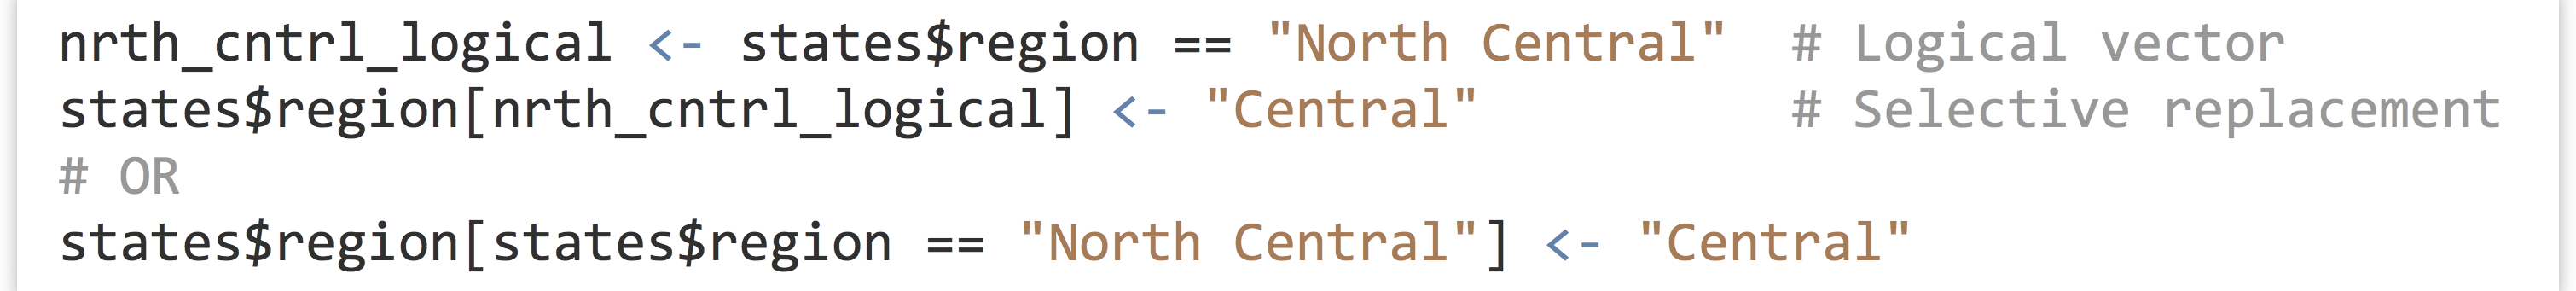 III.3_61_r_69_states_col_rename_north_central